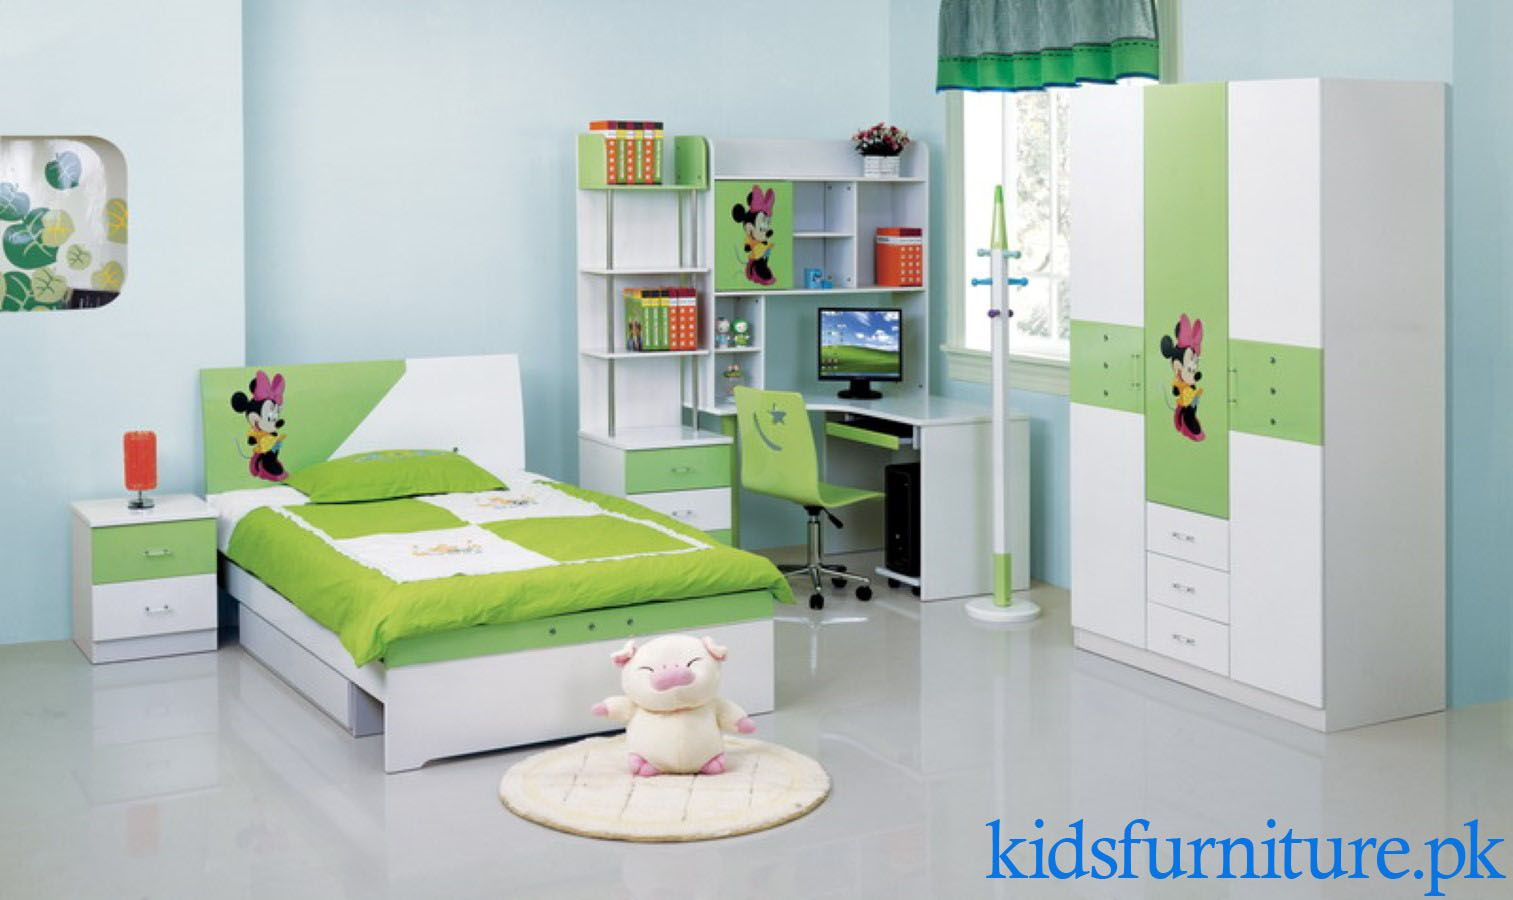 Kids furniture store pakistan